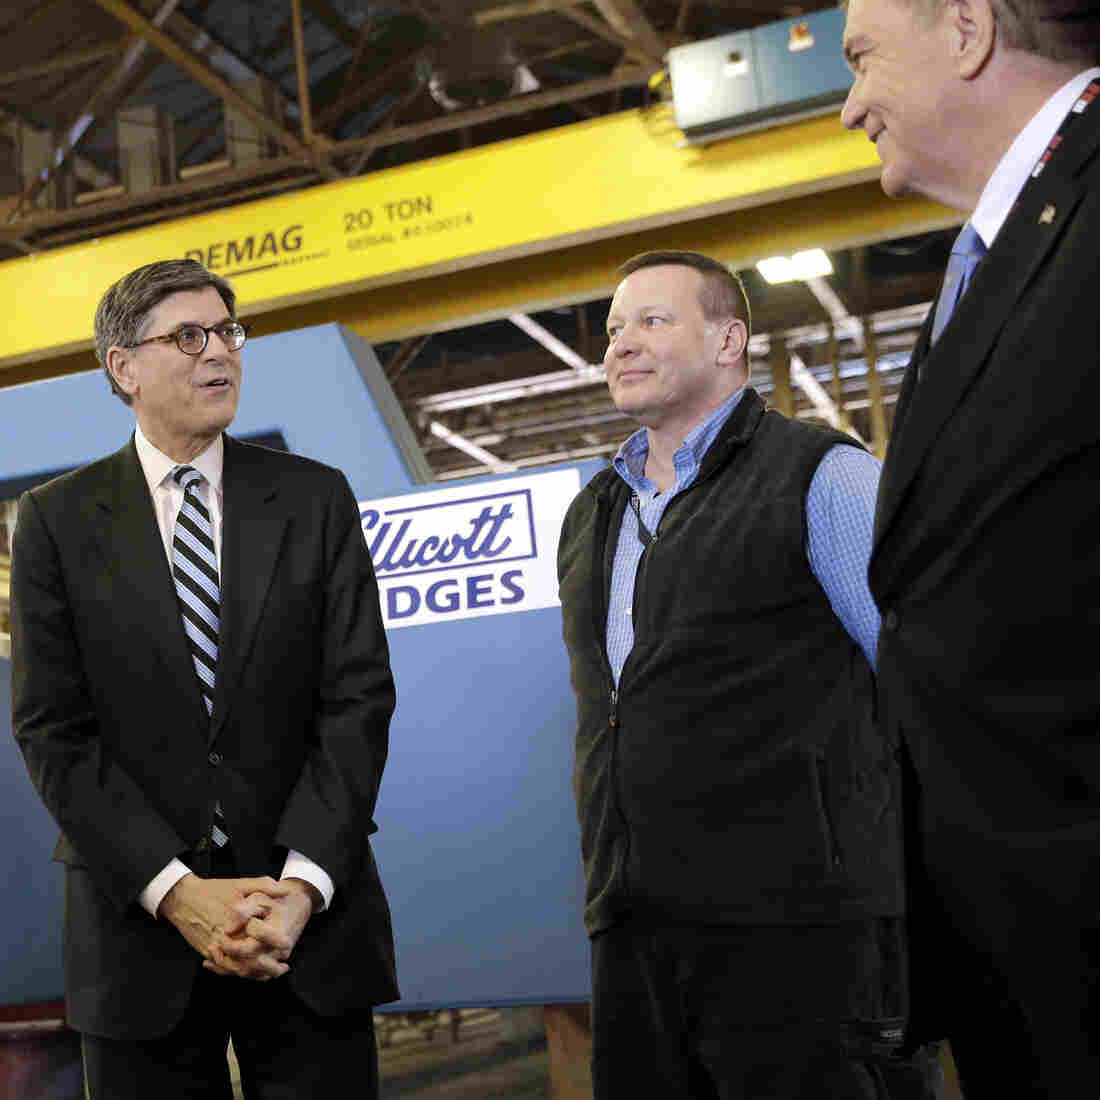 Treasury Secretary Jacob Lew (center) speaks with (from left) Sen. Ben Cardin, D-Md., Ellicott Dredges GM Craig Murdock and CFO Joseph Wendel during a tour of the company's manufacturing facility in March. Lew was on hand to promote investment in American infrastructure. The company has utilized the Export-Import Bank's services.